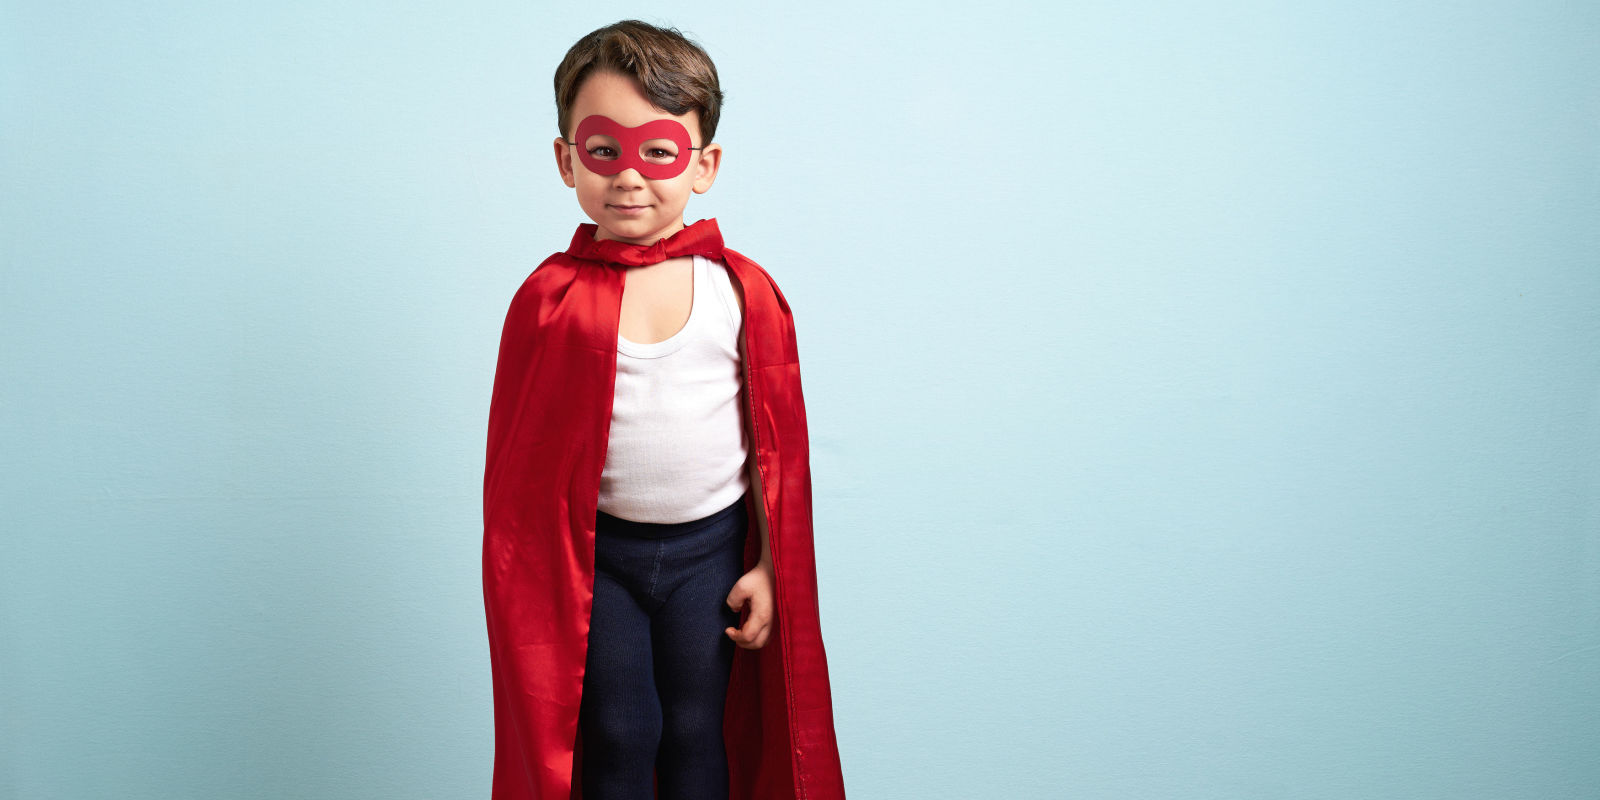 Superhero Culture Linked to Aggression in Kids - Effect of ...